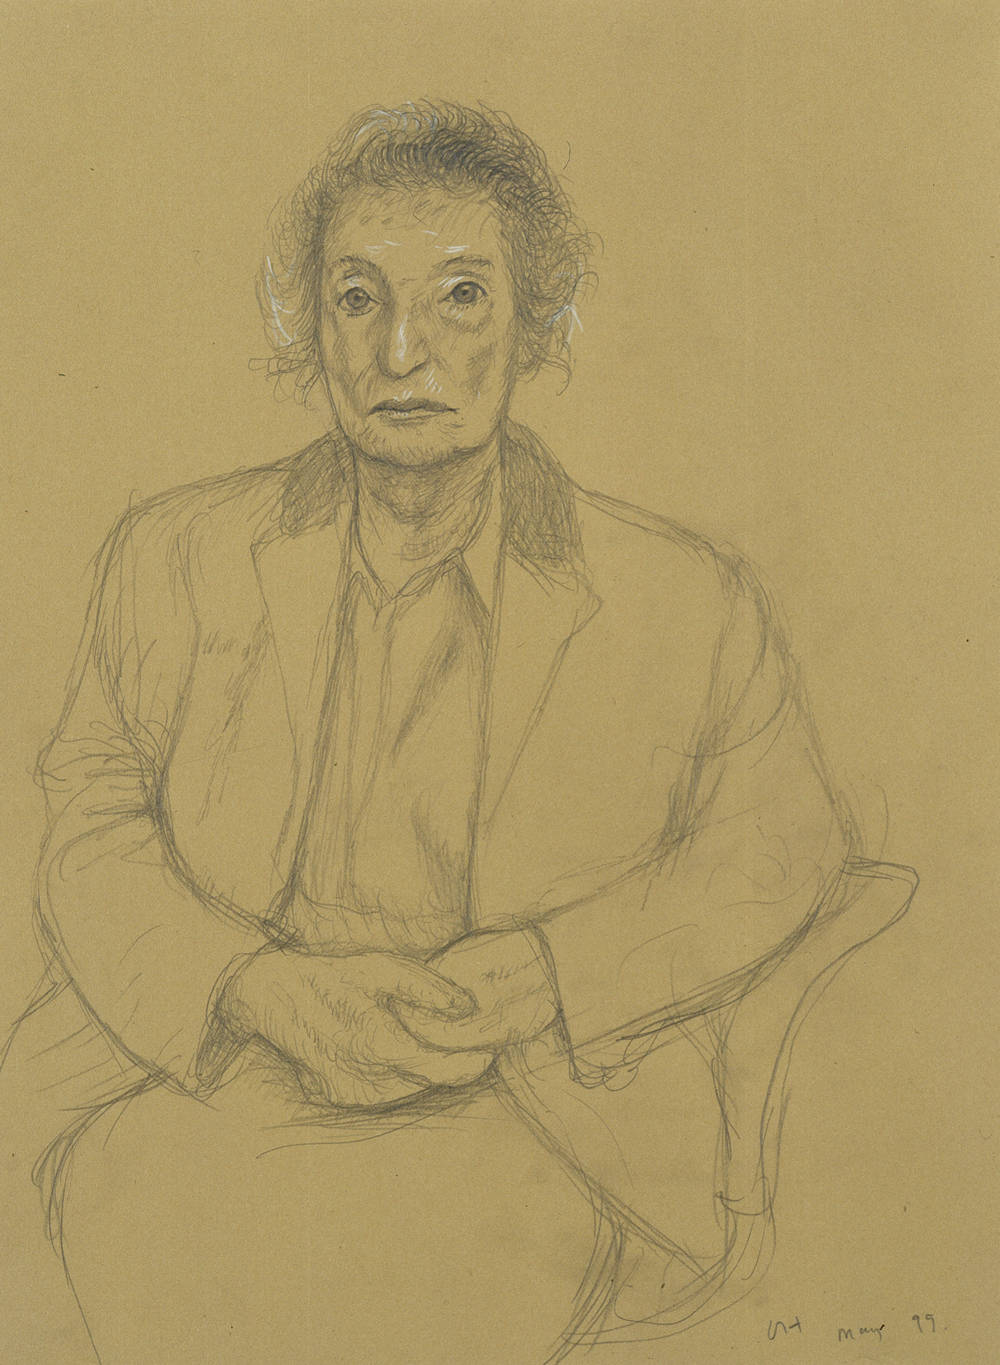 David Hockney, Annely Juda, London, 20th May 1999, 1999. Pencil and white crayon on buff paper 38 x 28 cm © the Artist. Courtesy Annely Juda Fine Art, London